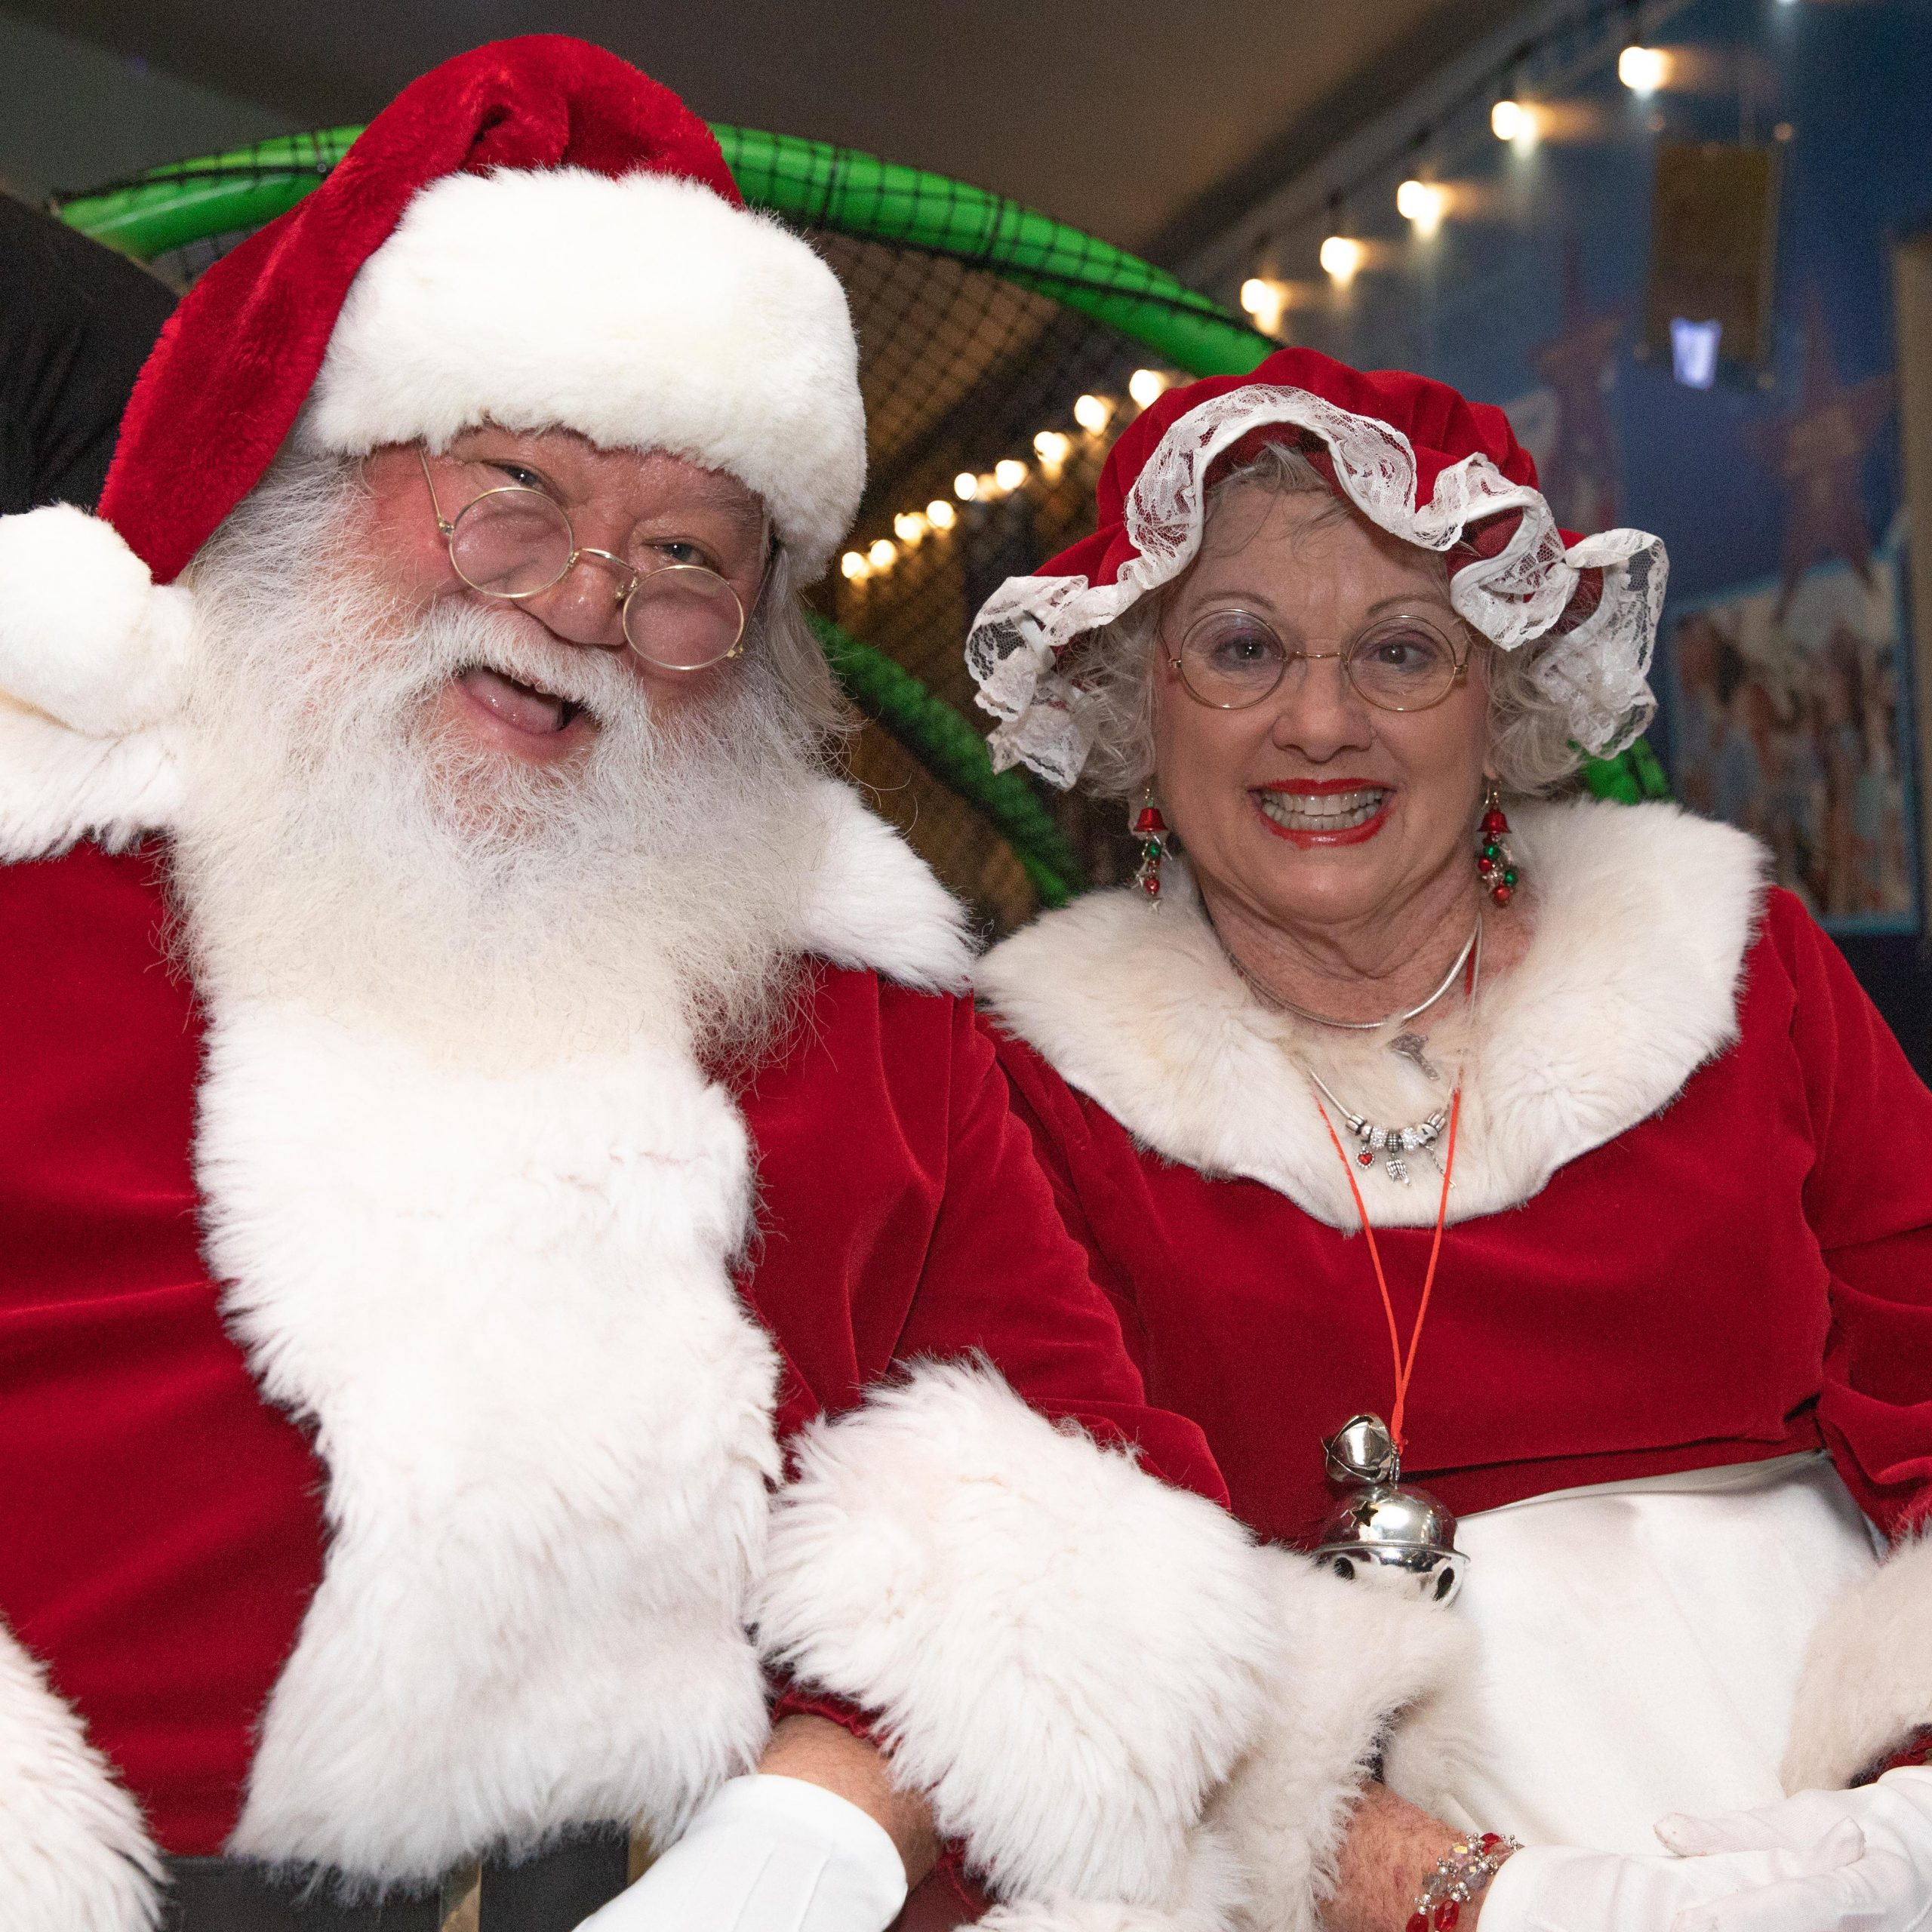 Santa and Mrs. Clause smiling